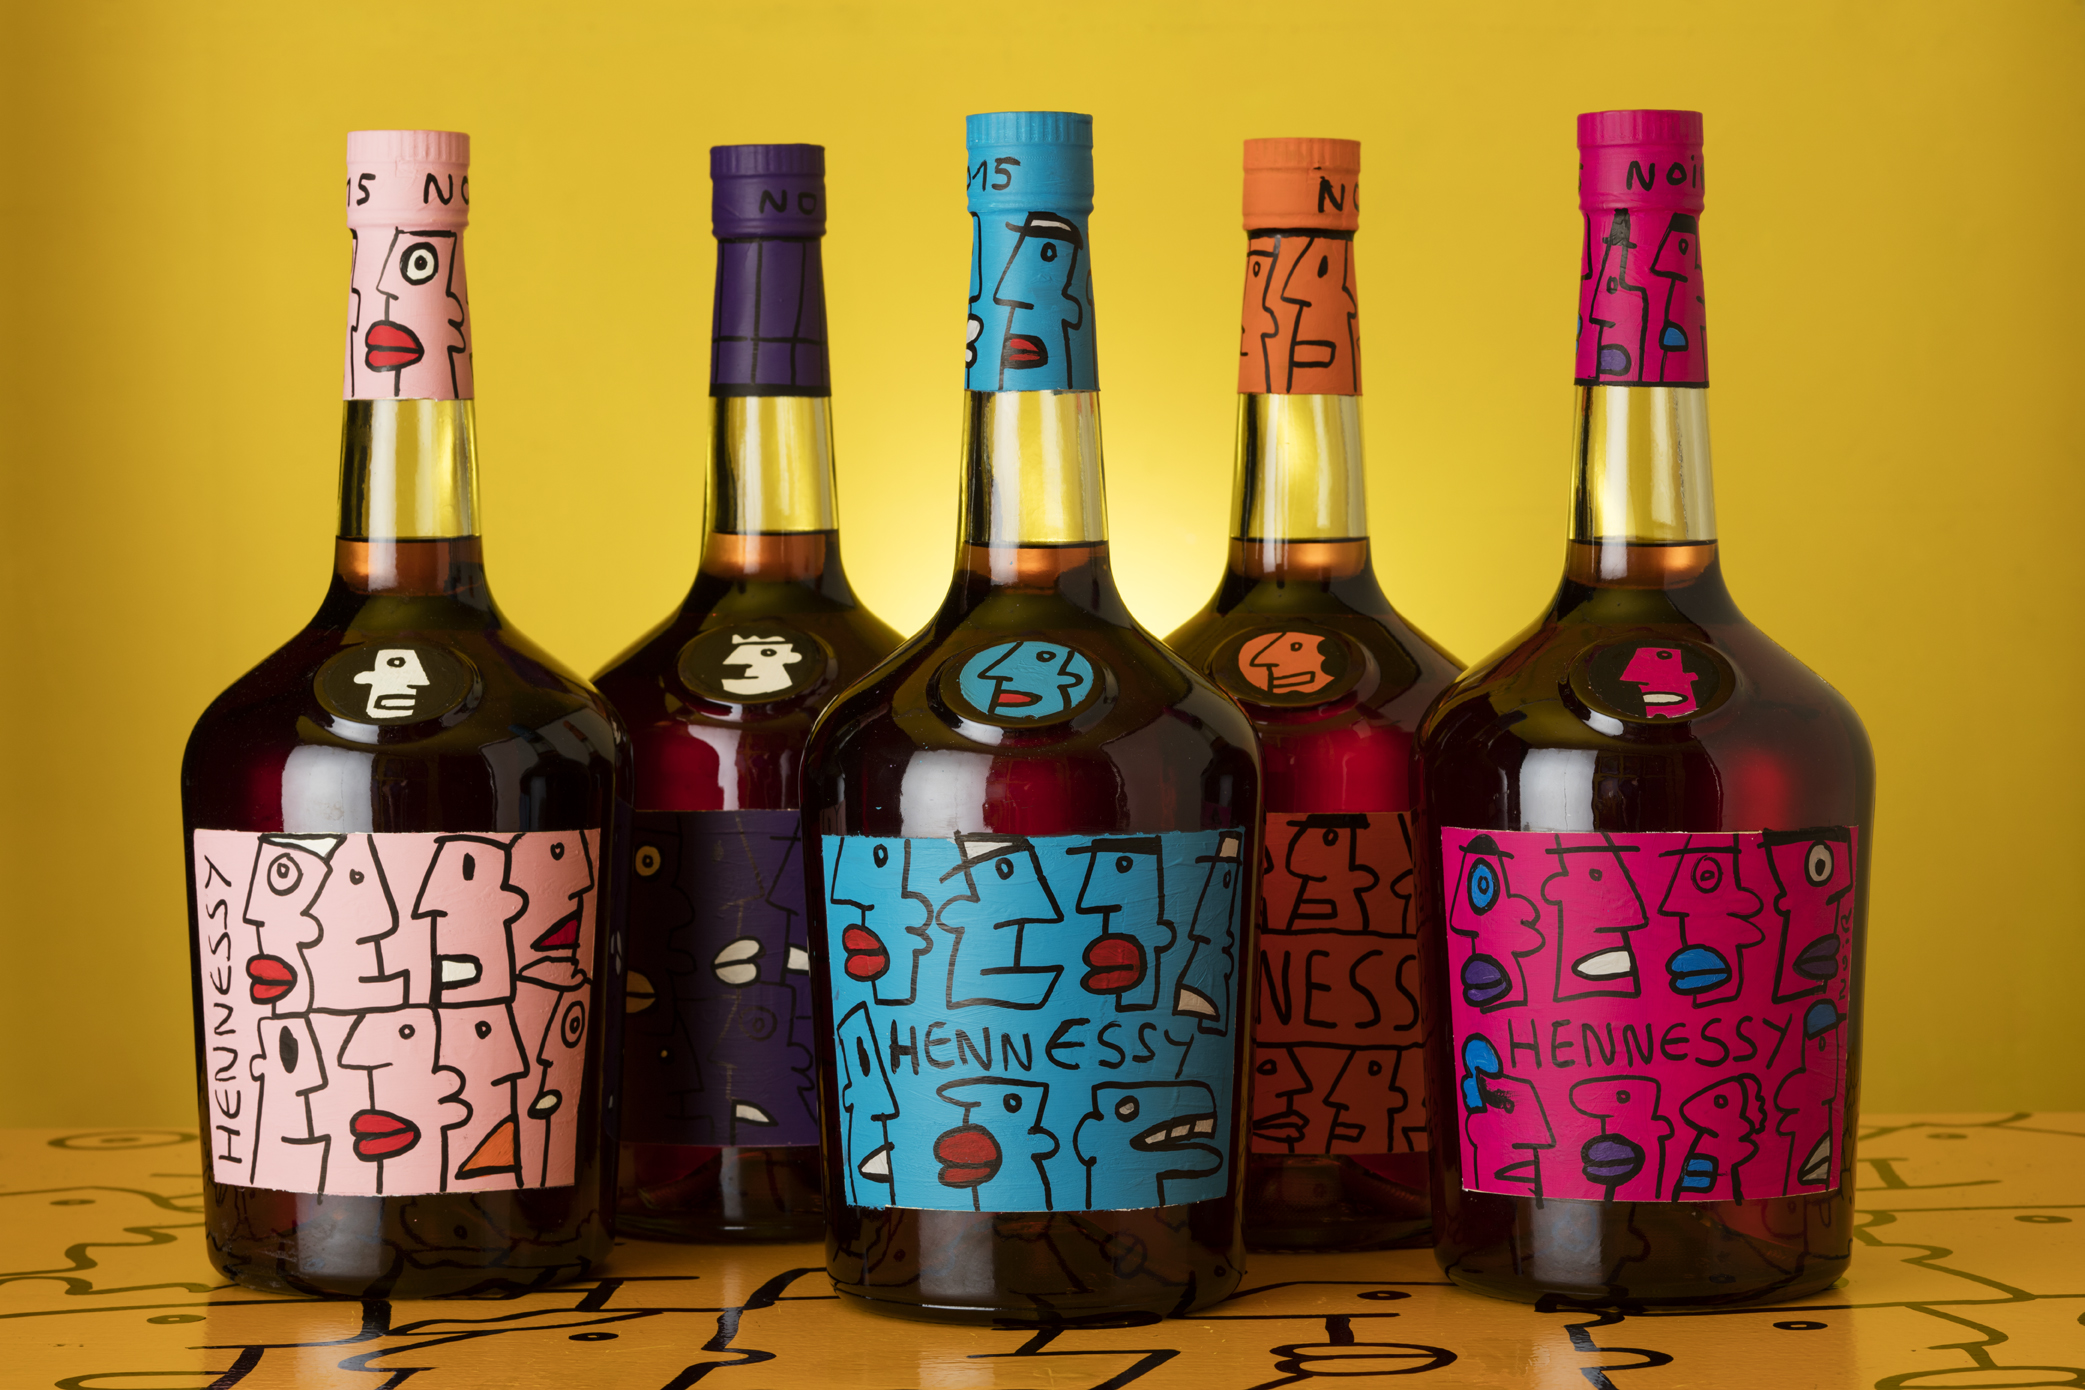 Thierry Noir - Hennessy Group